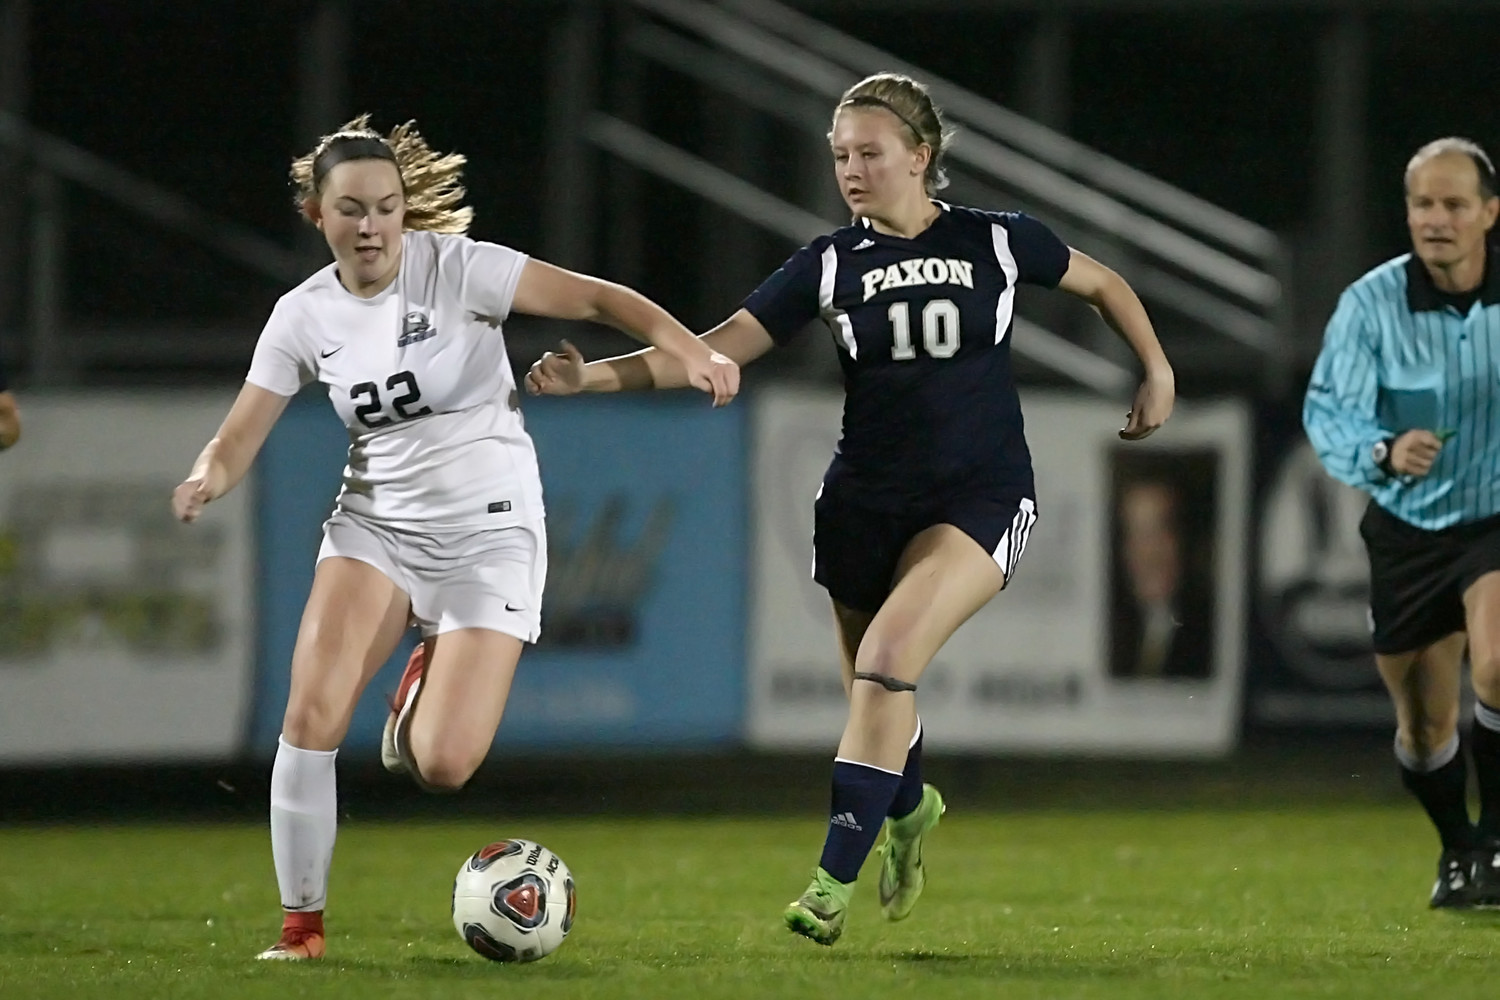 Reilly Tarbet (22) has good position as she battles the Paxon player for control of the ball.